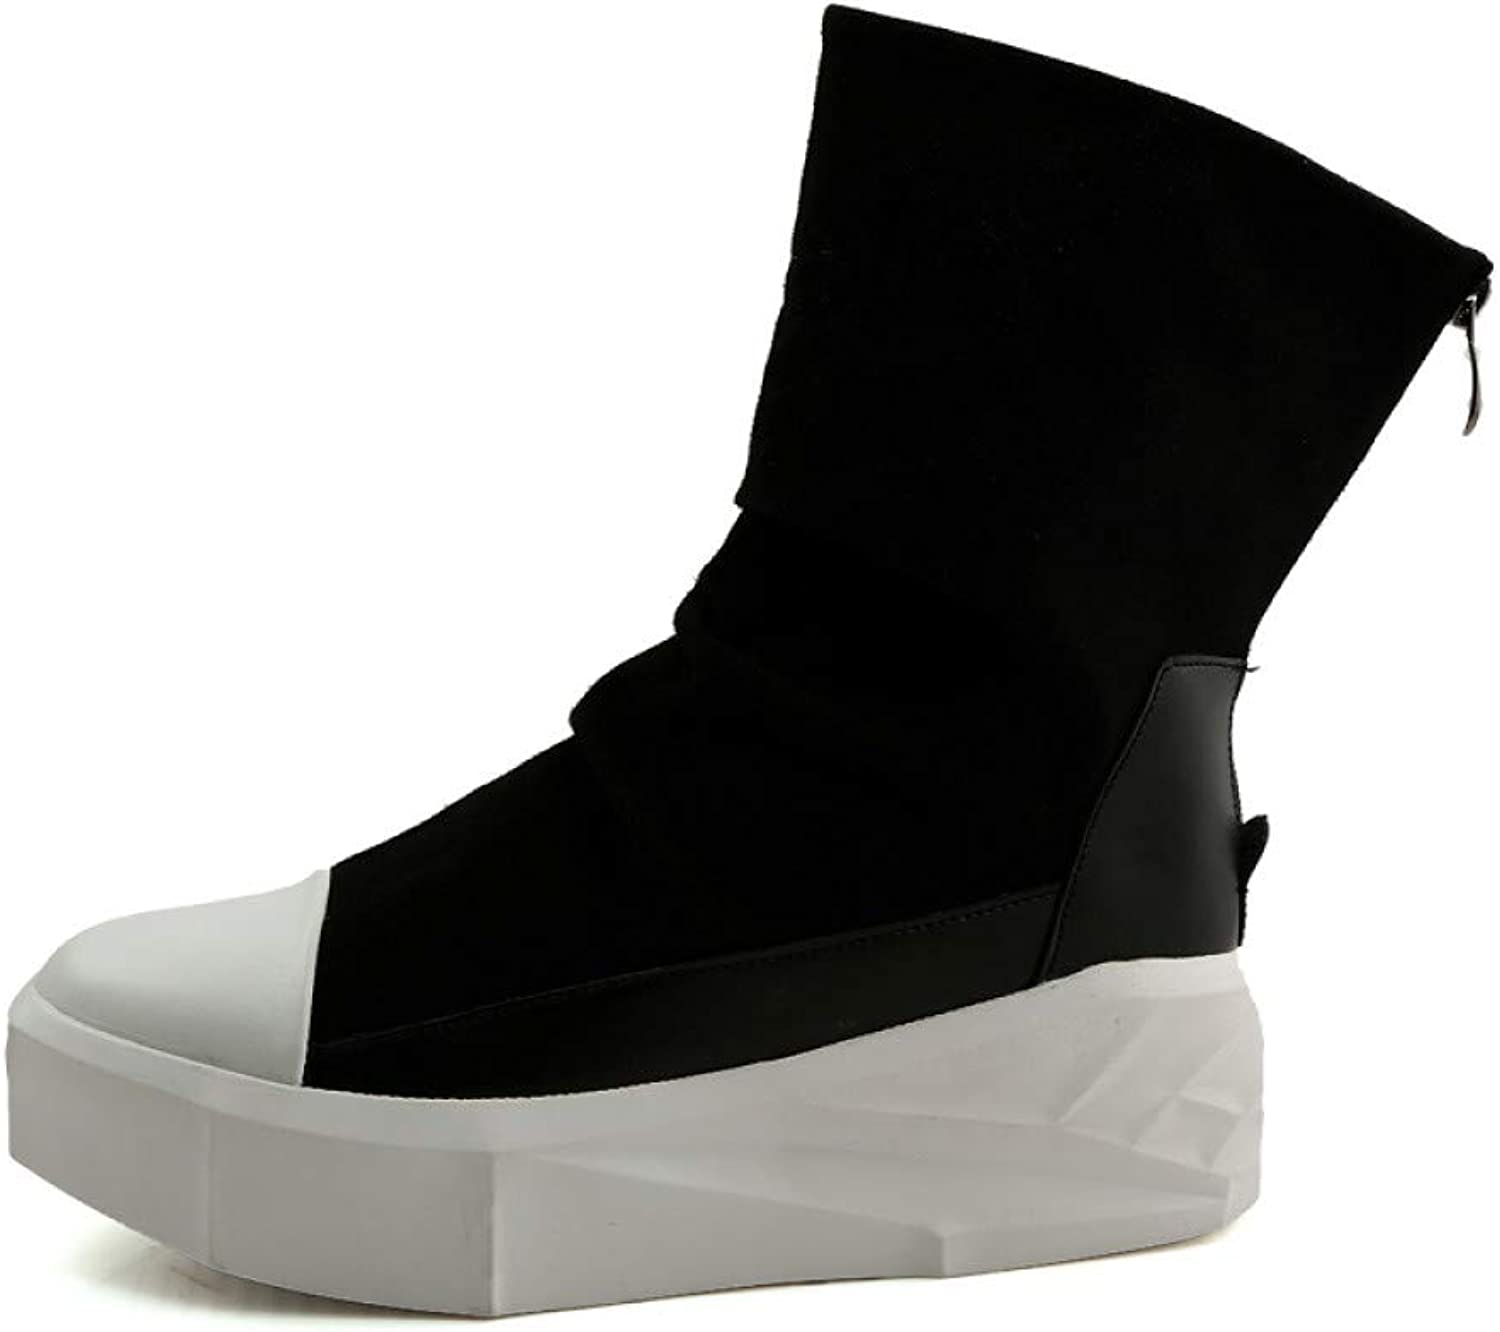 FHCGMX New Men 8cm Height Increasing Platform Boots Back Zip Leather shoes Male Mixed colors High Top Black White Men's Boots